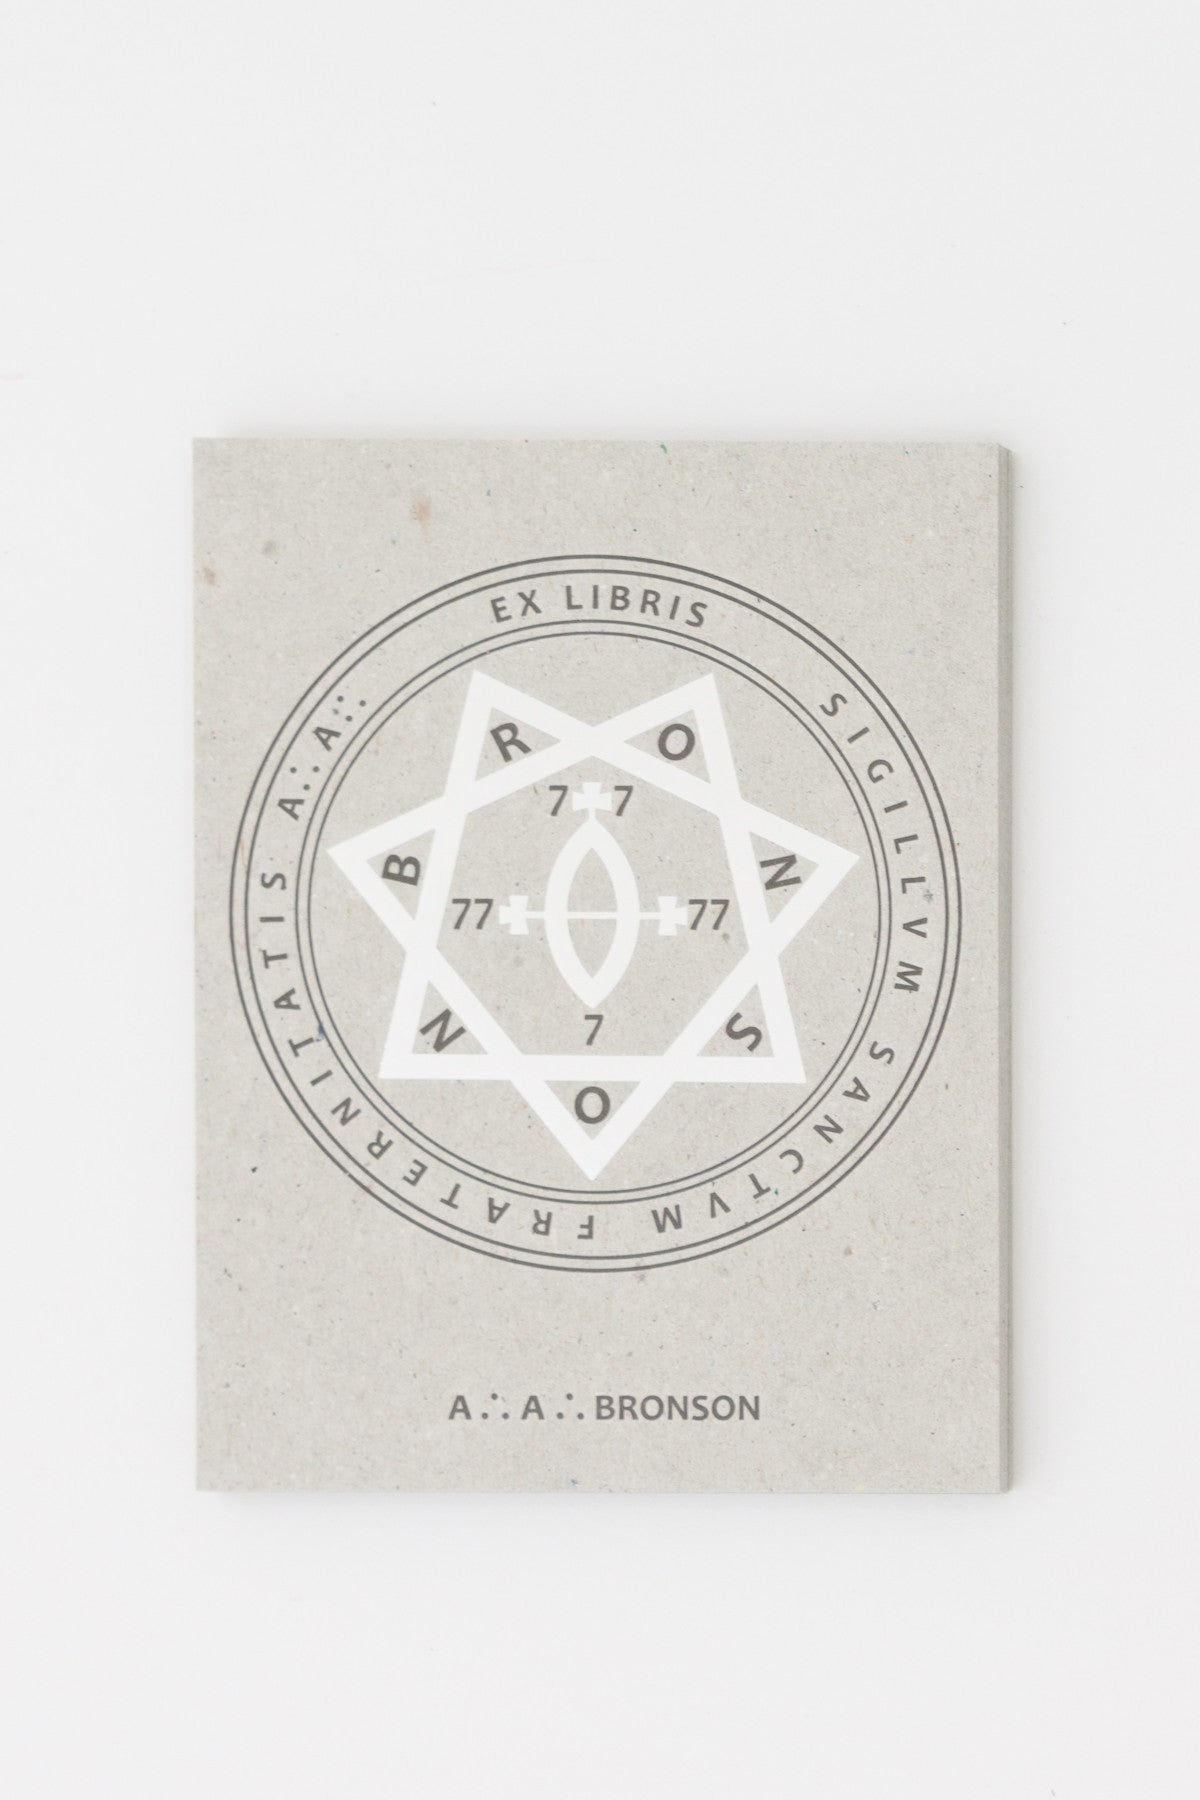 'Ex Libris' Bookplate - AA Bronson @ Tenderbooks